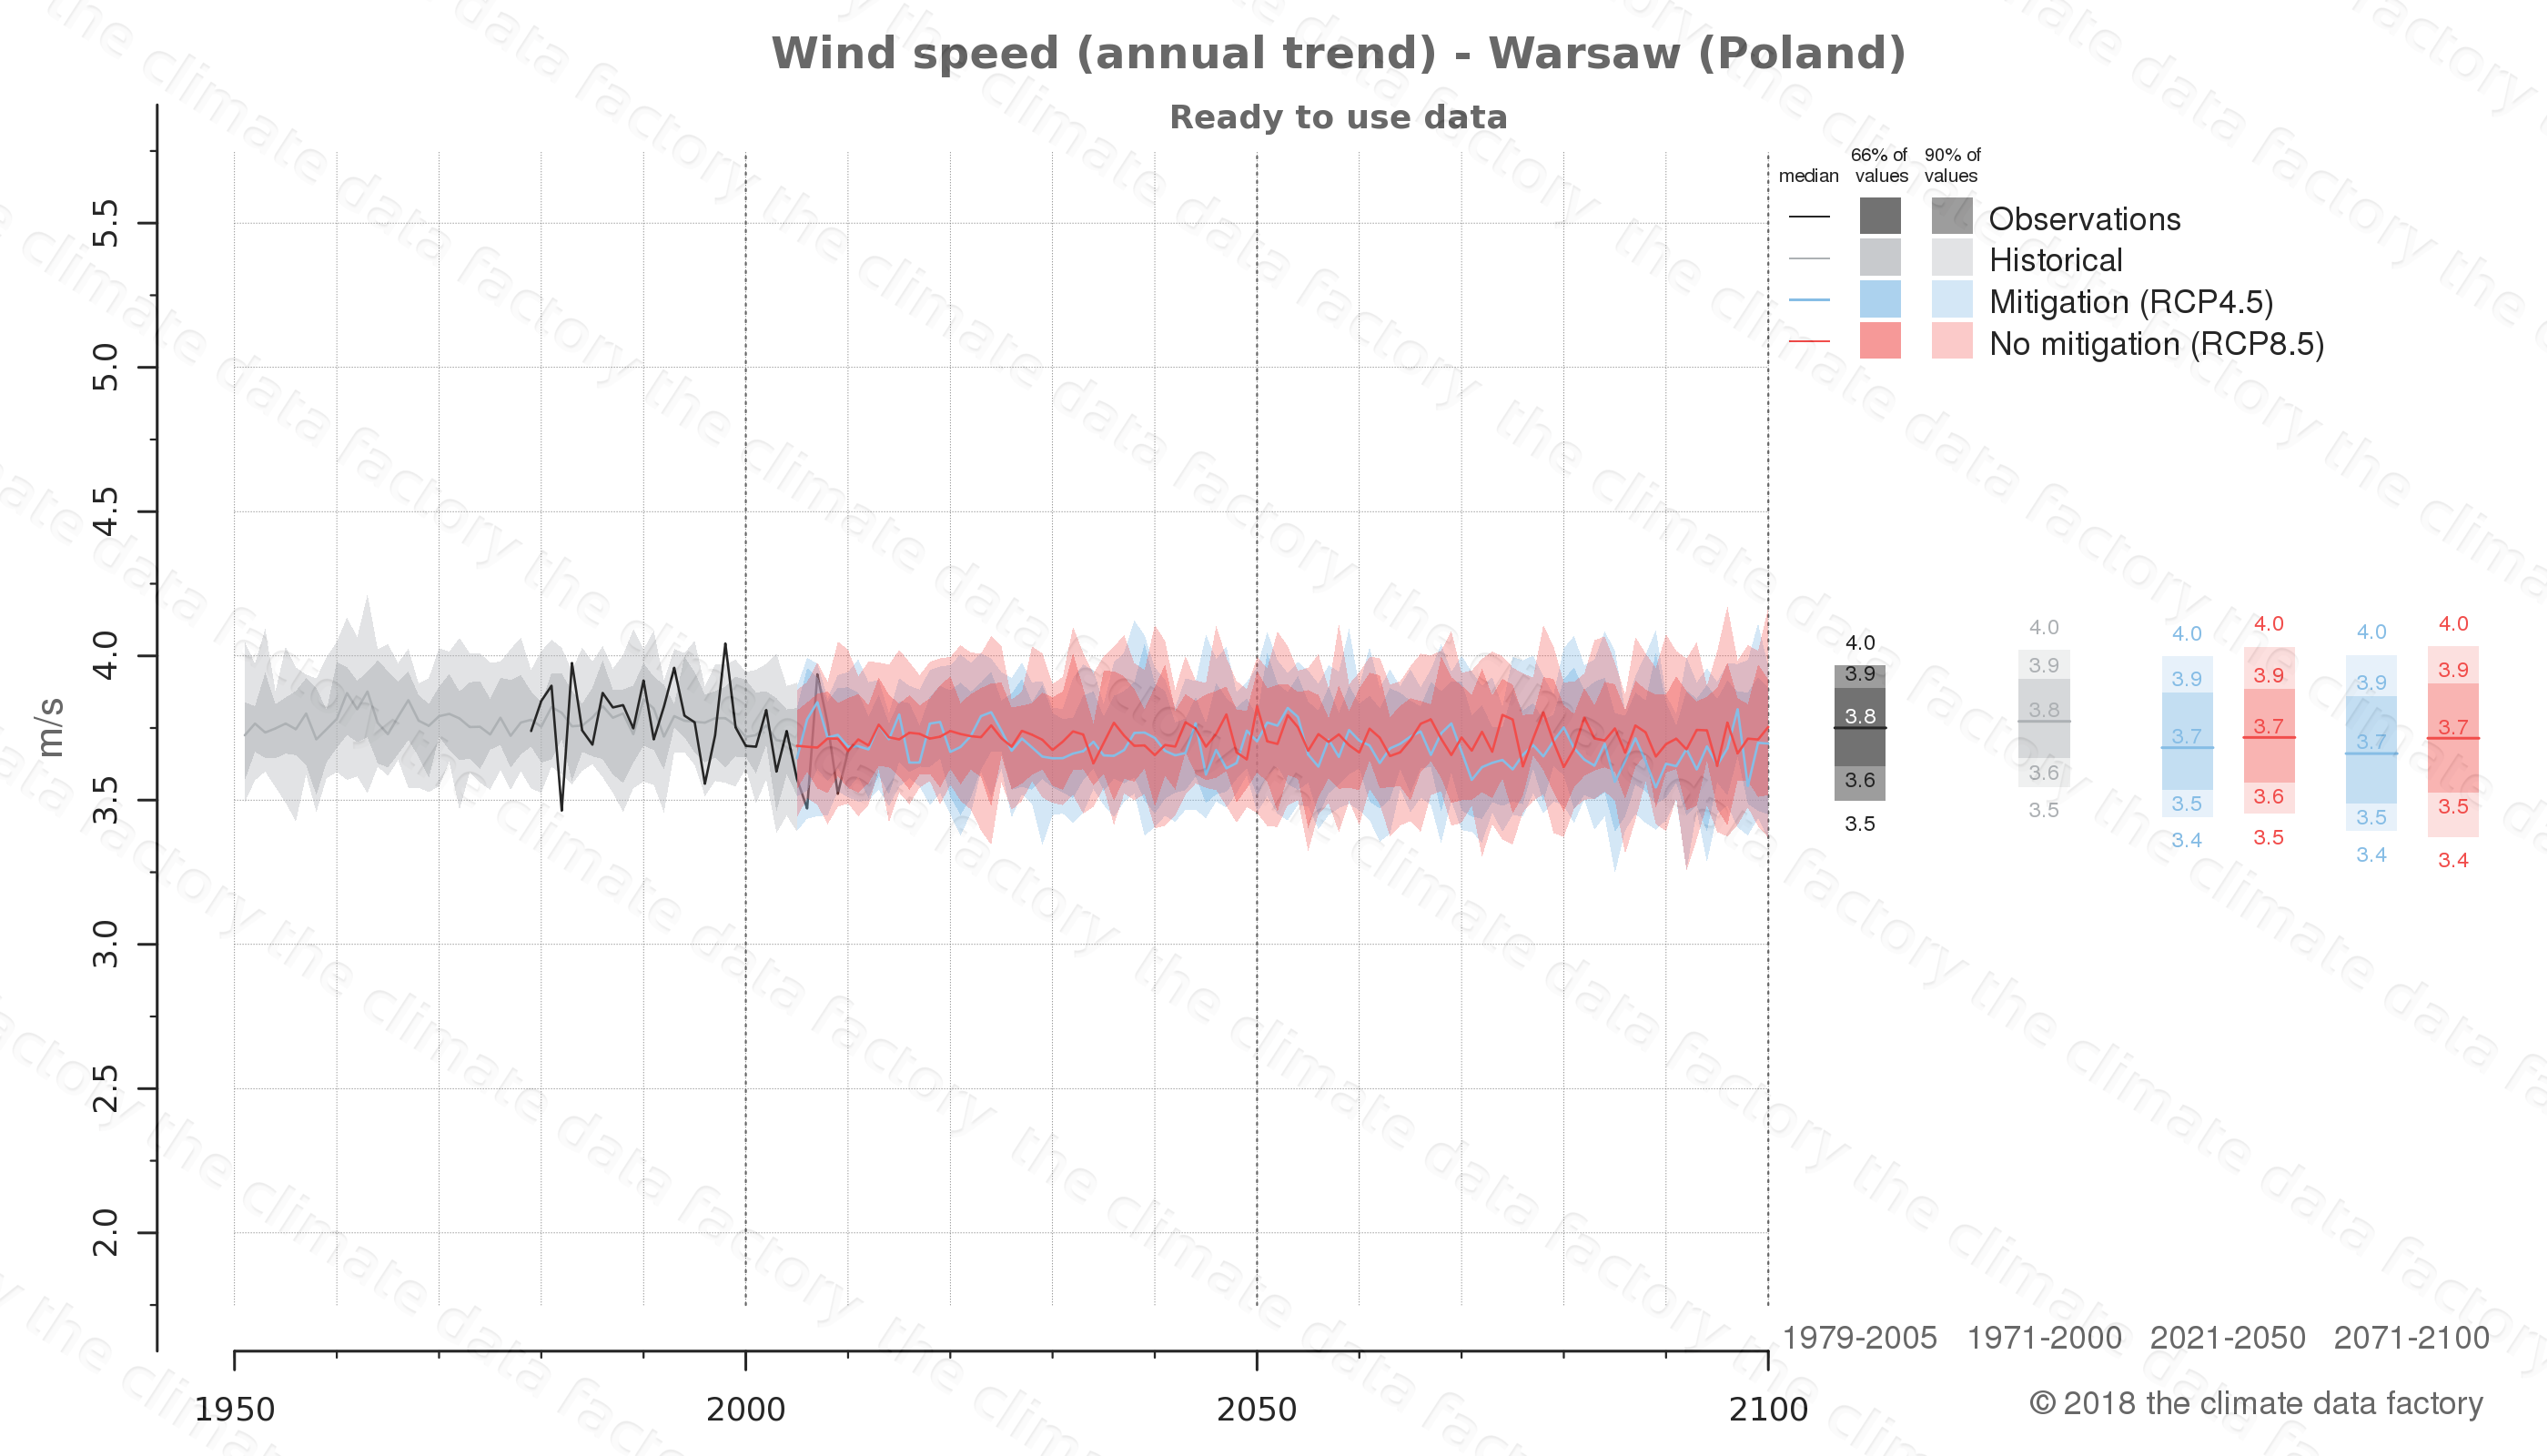 climate change data policy adaptation climate graph city data wind-speed warsaw poland